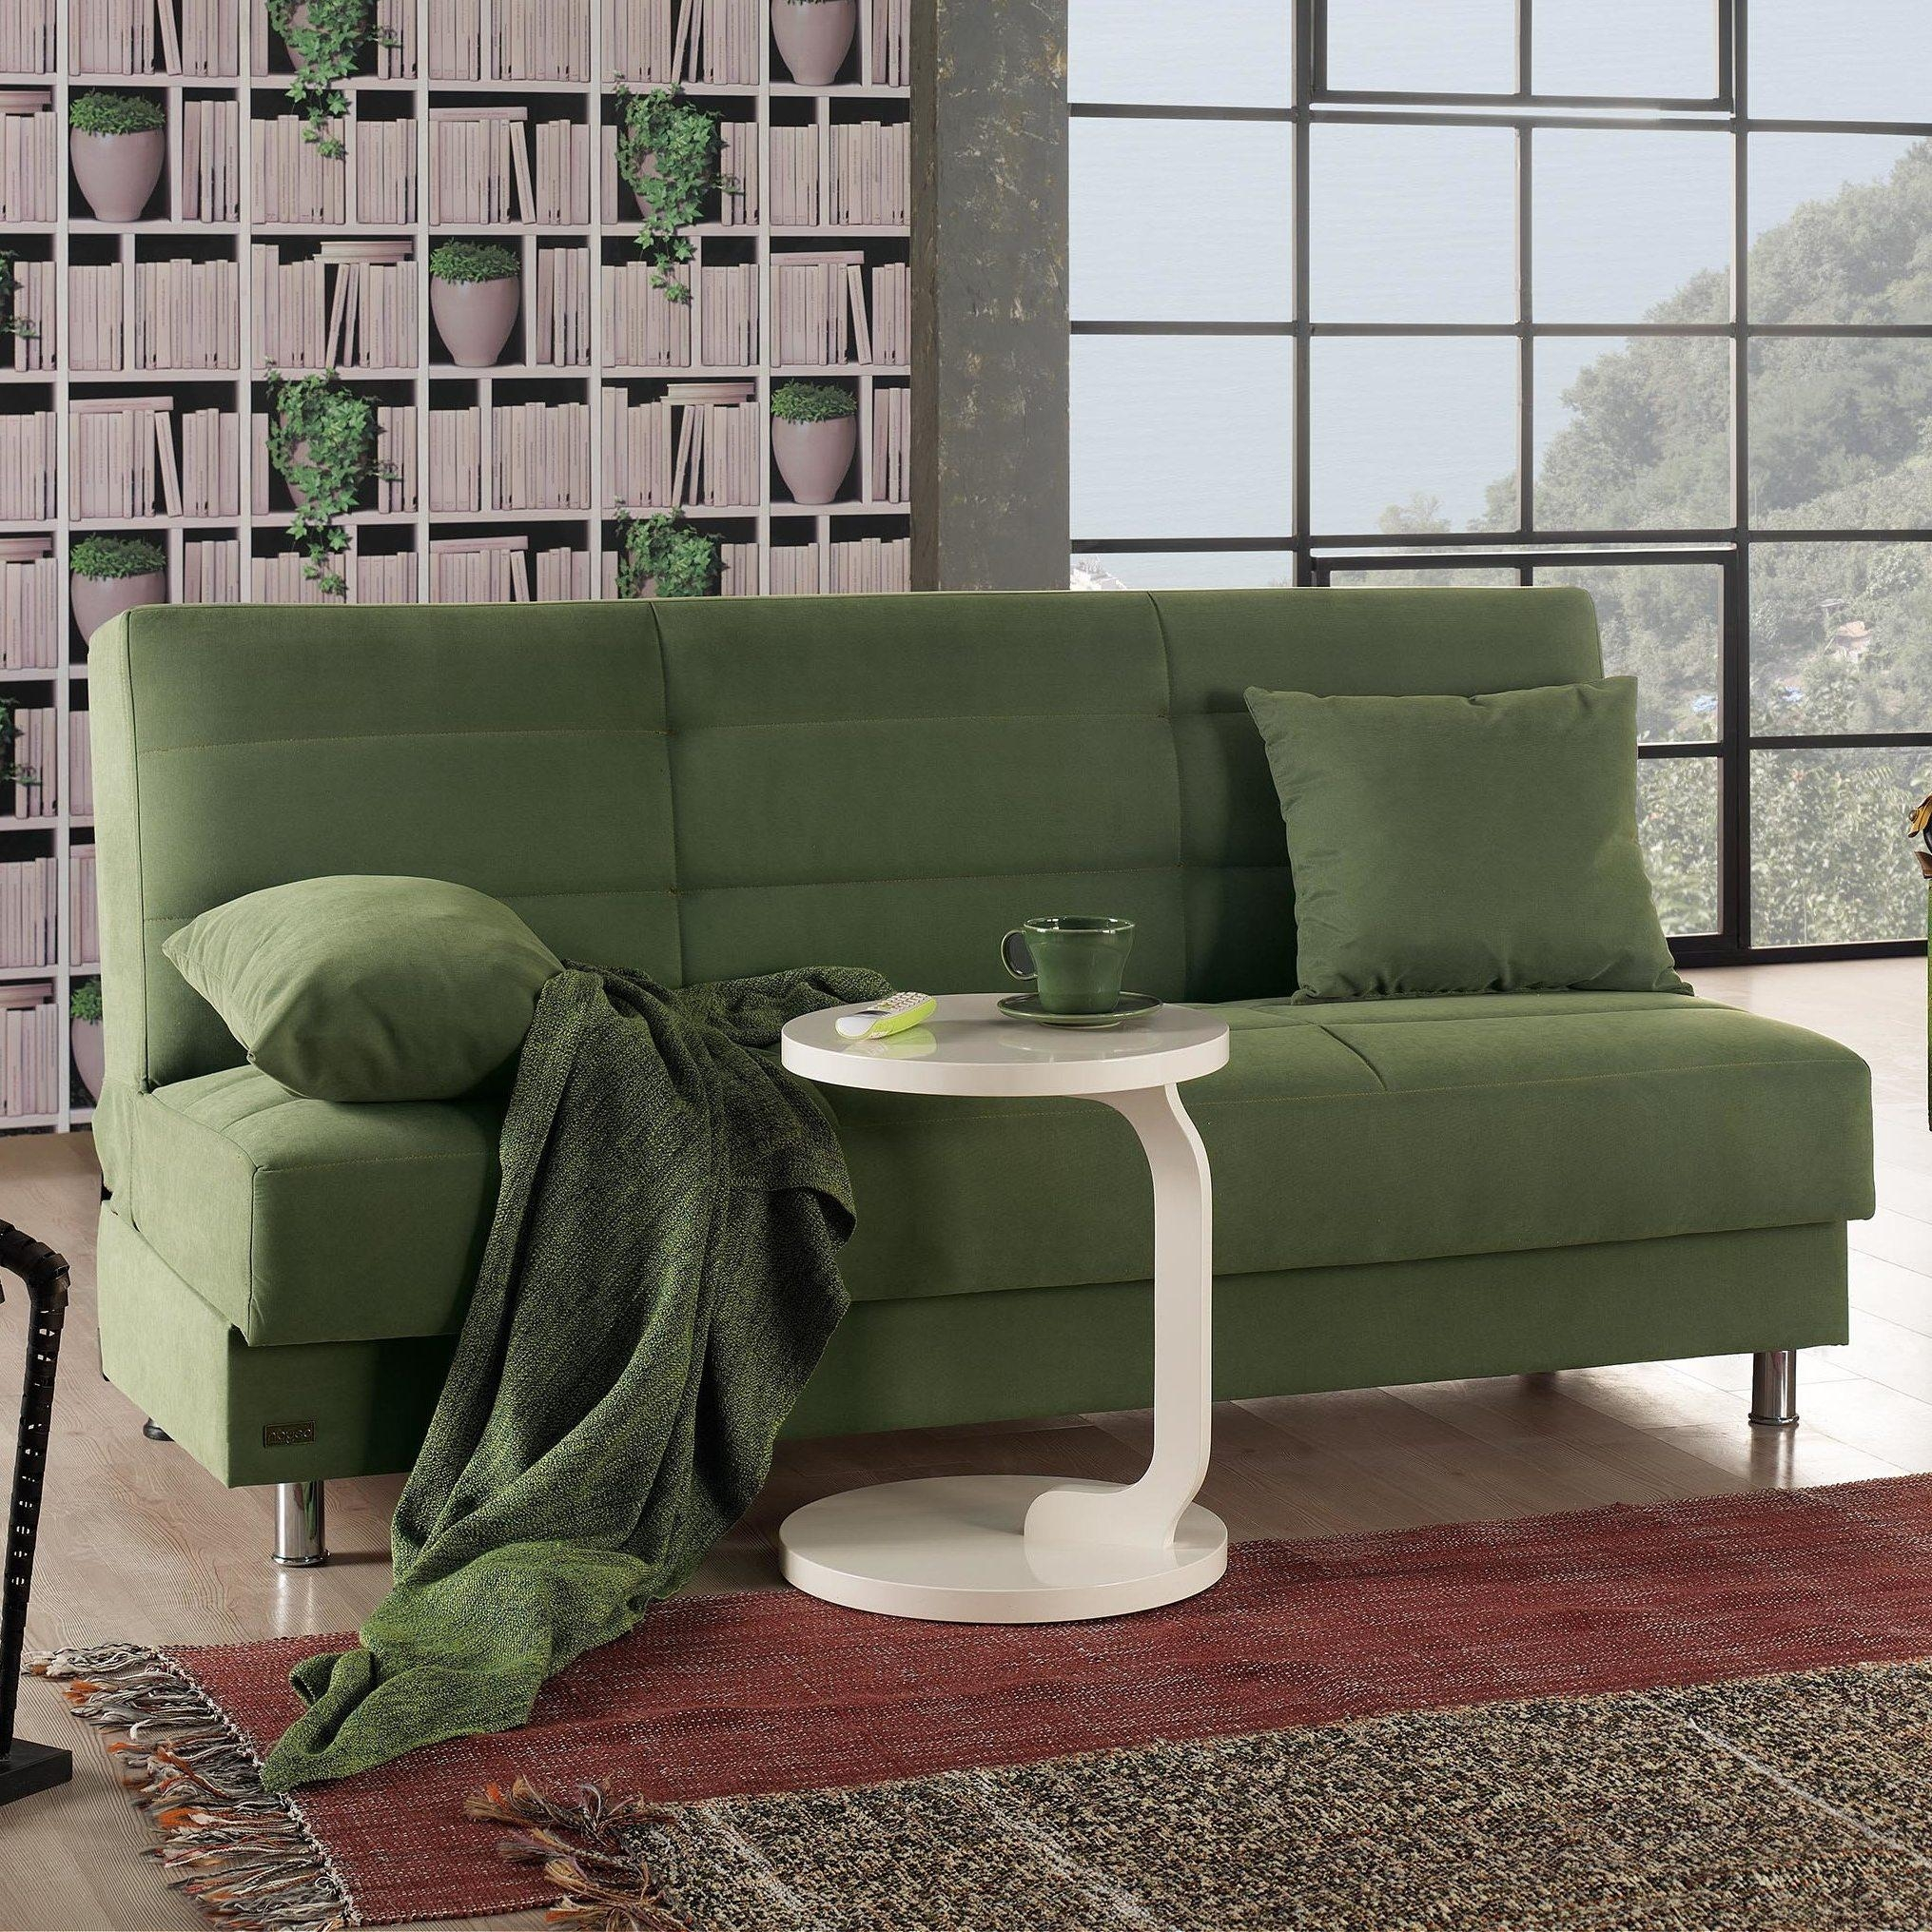 Davis Sleeper Sofa | Sofa Gallery | Kengire Intended For Davis Sleeper Sofas (Image 5 of 20)